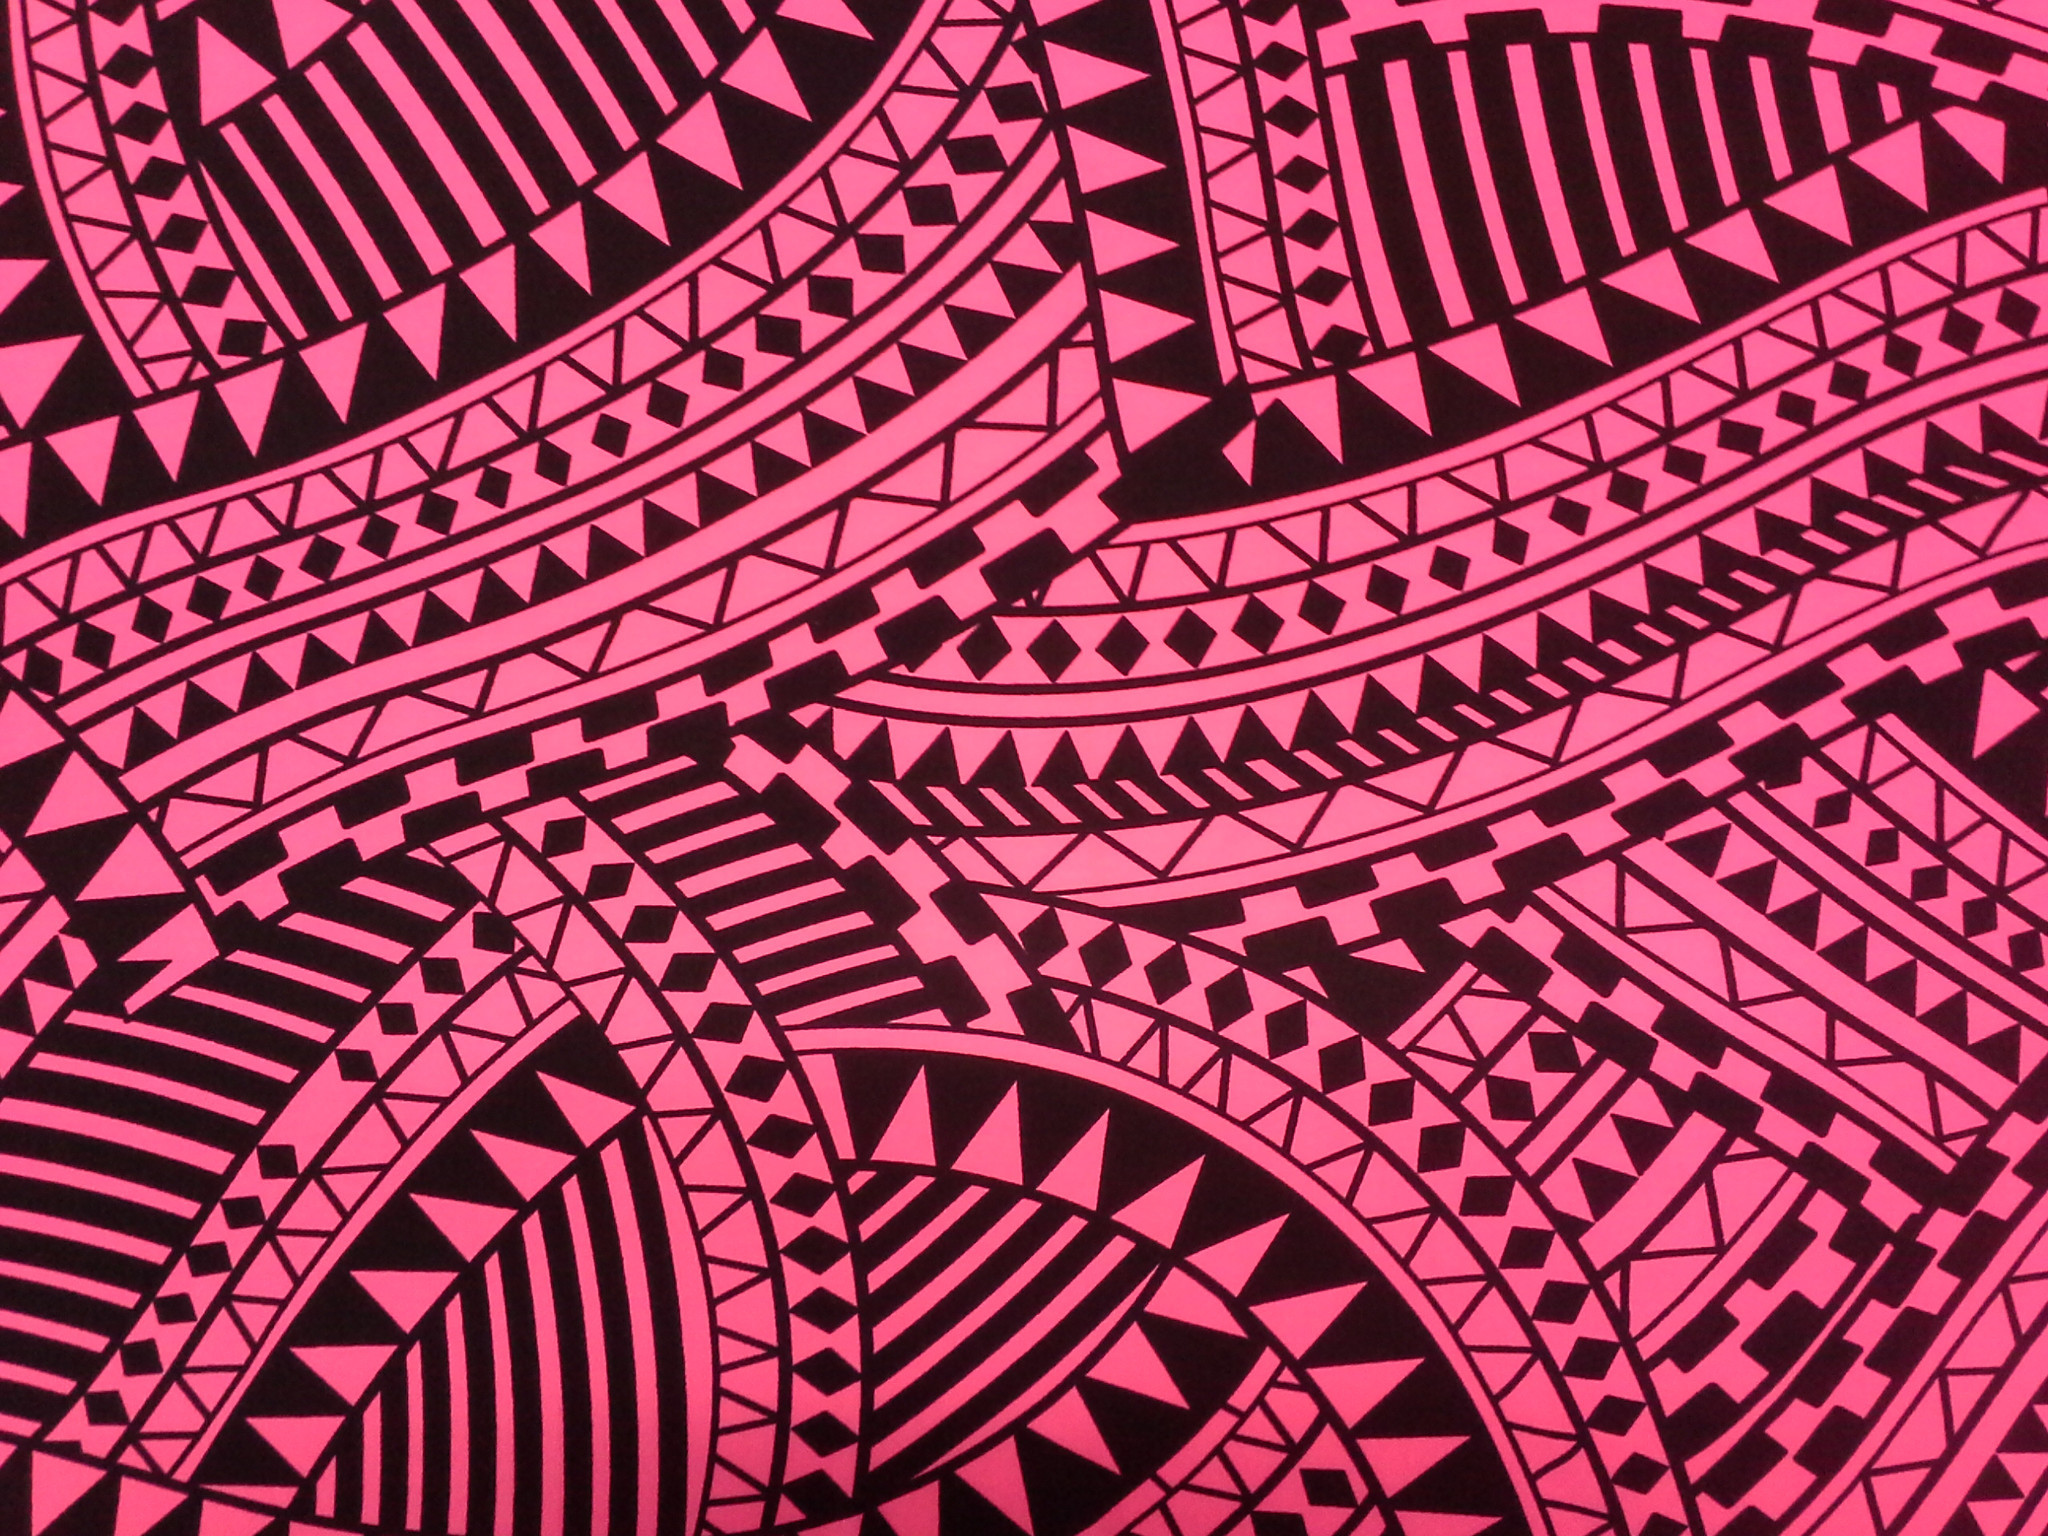 2048x1536 - Cool Tribal Backgrounds 49